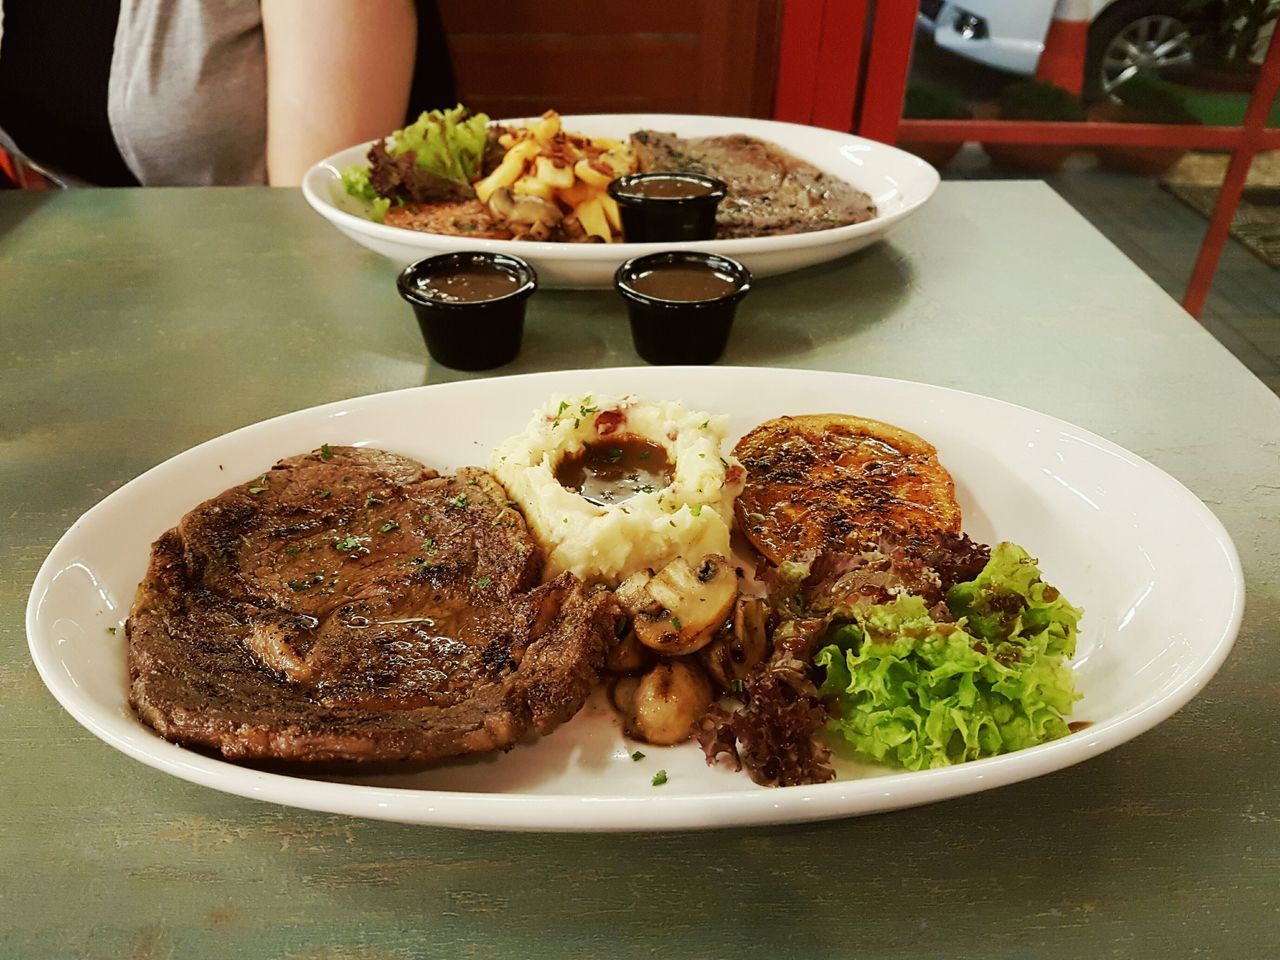 plate, food, food and drink, ready-to-eat, serving size, meat, freshness, table, healthy eating, indoors, meal, vegetable, bowl, indulgence, temptation, no people, close-up, serving dish, mashed potatoes, fried chicken, beef, day